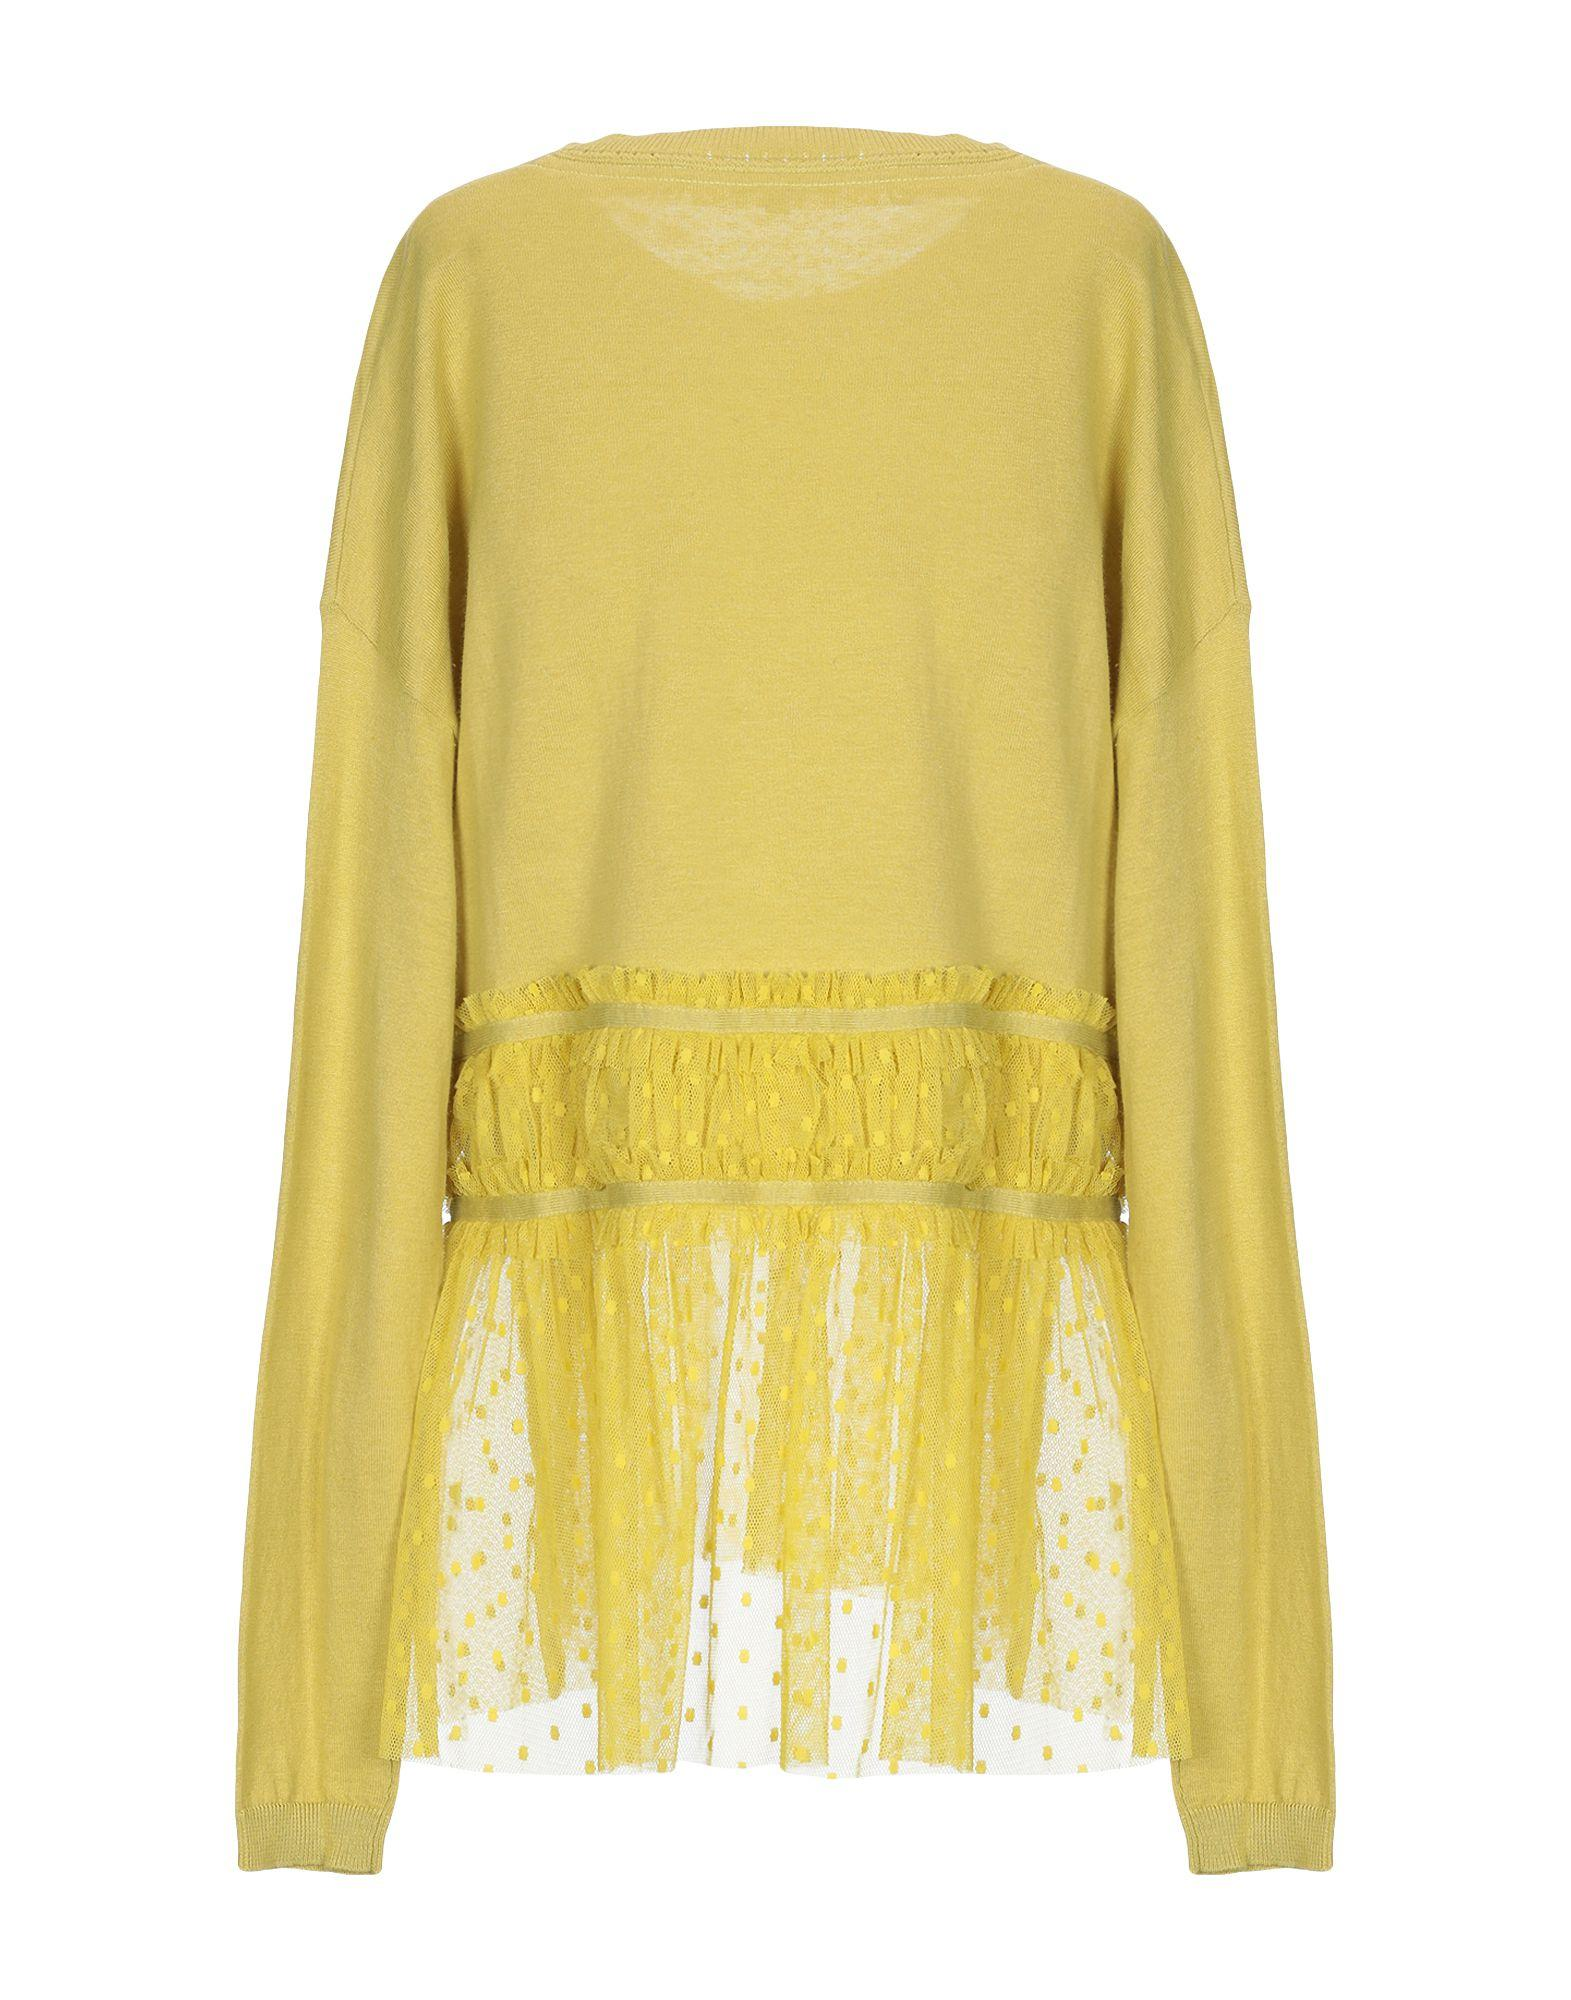 e8a65f7743 Patrizia Pepe Jumper in Yellow - Lyst